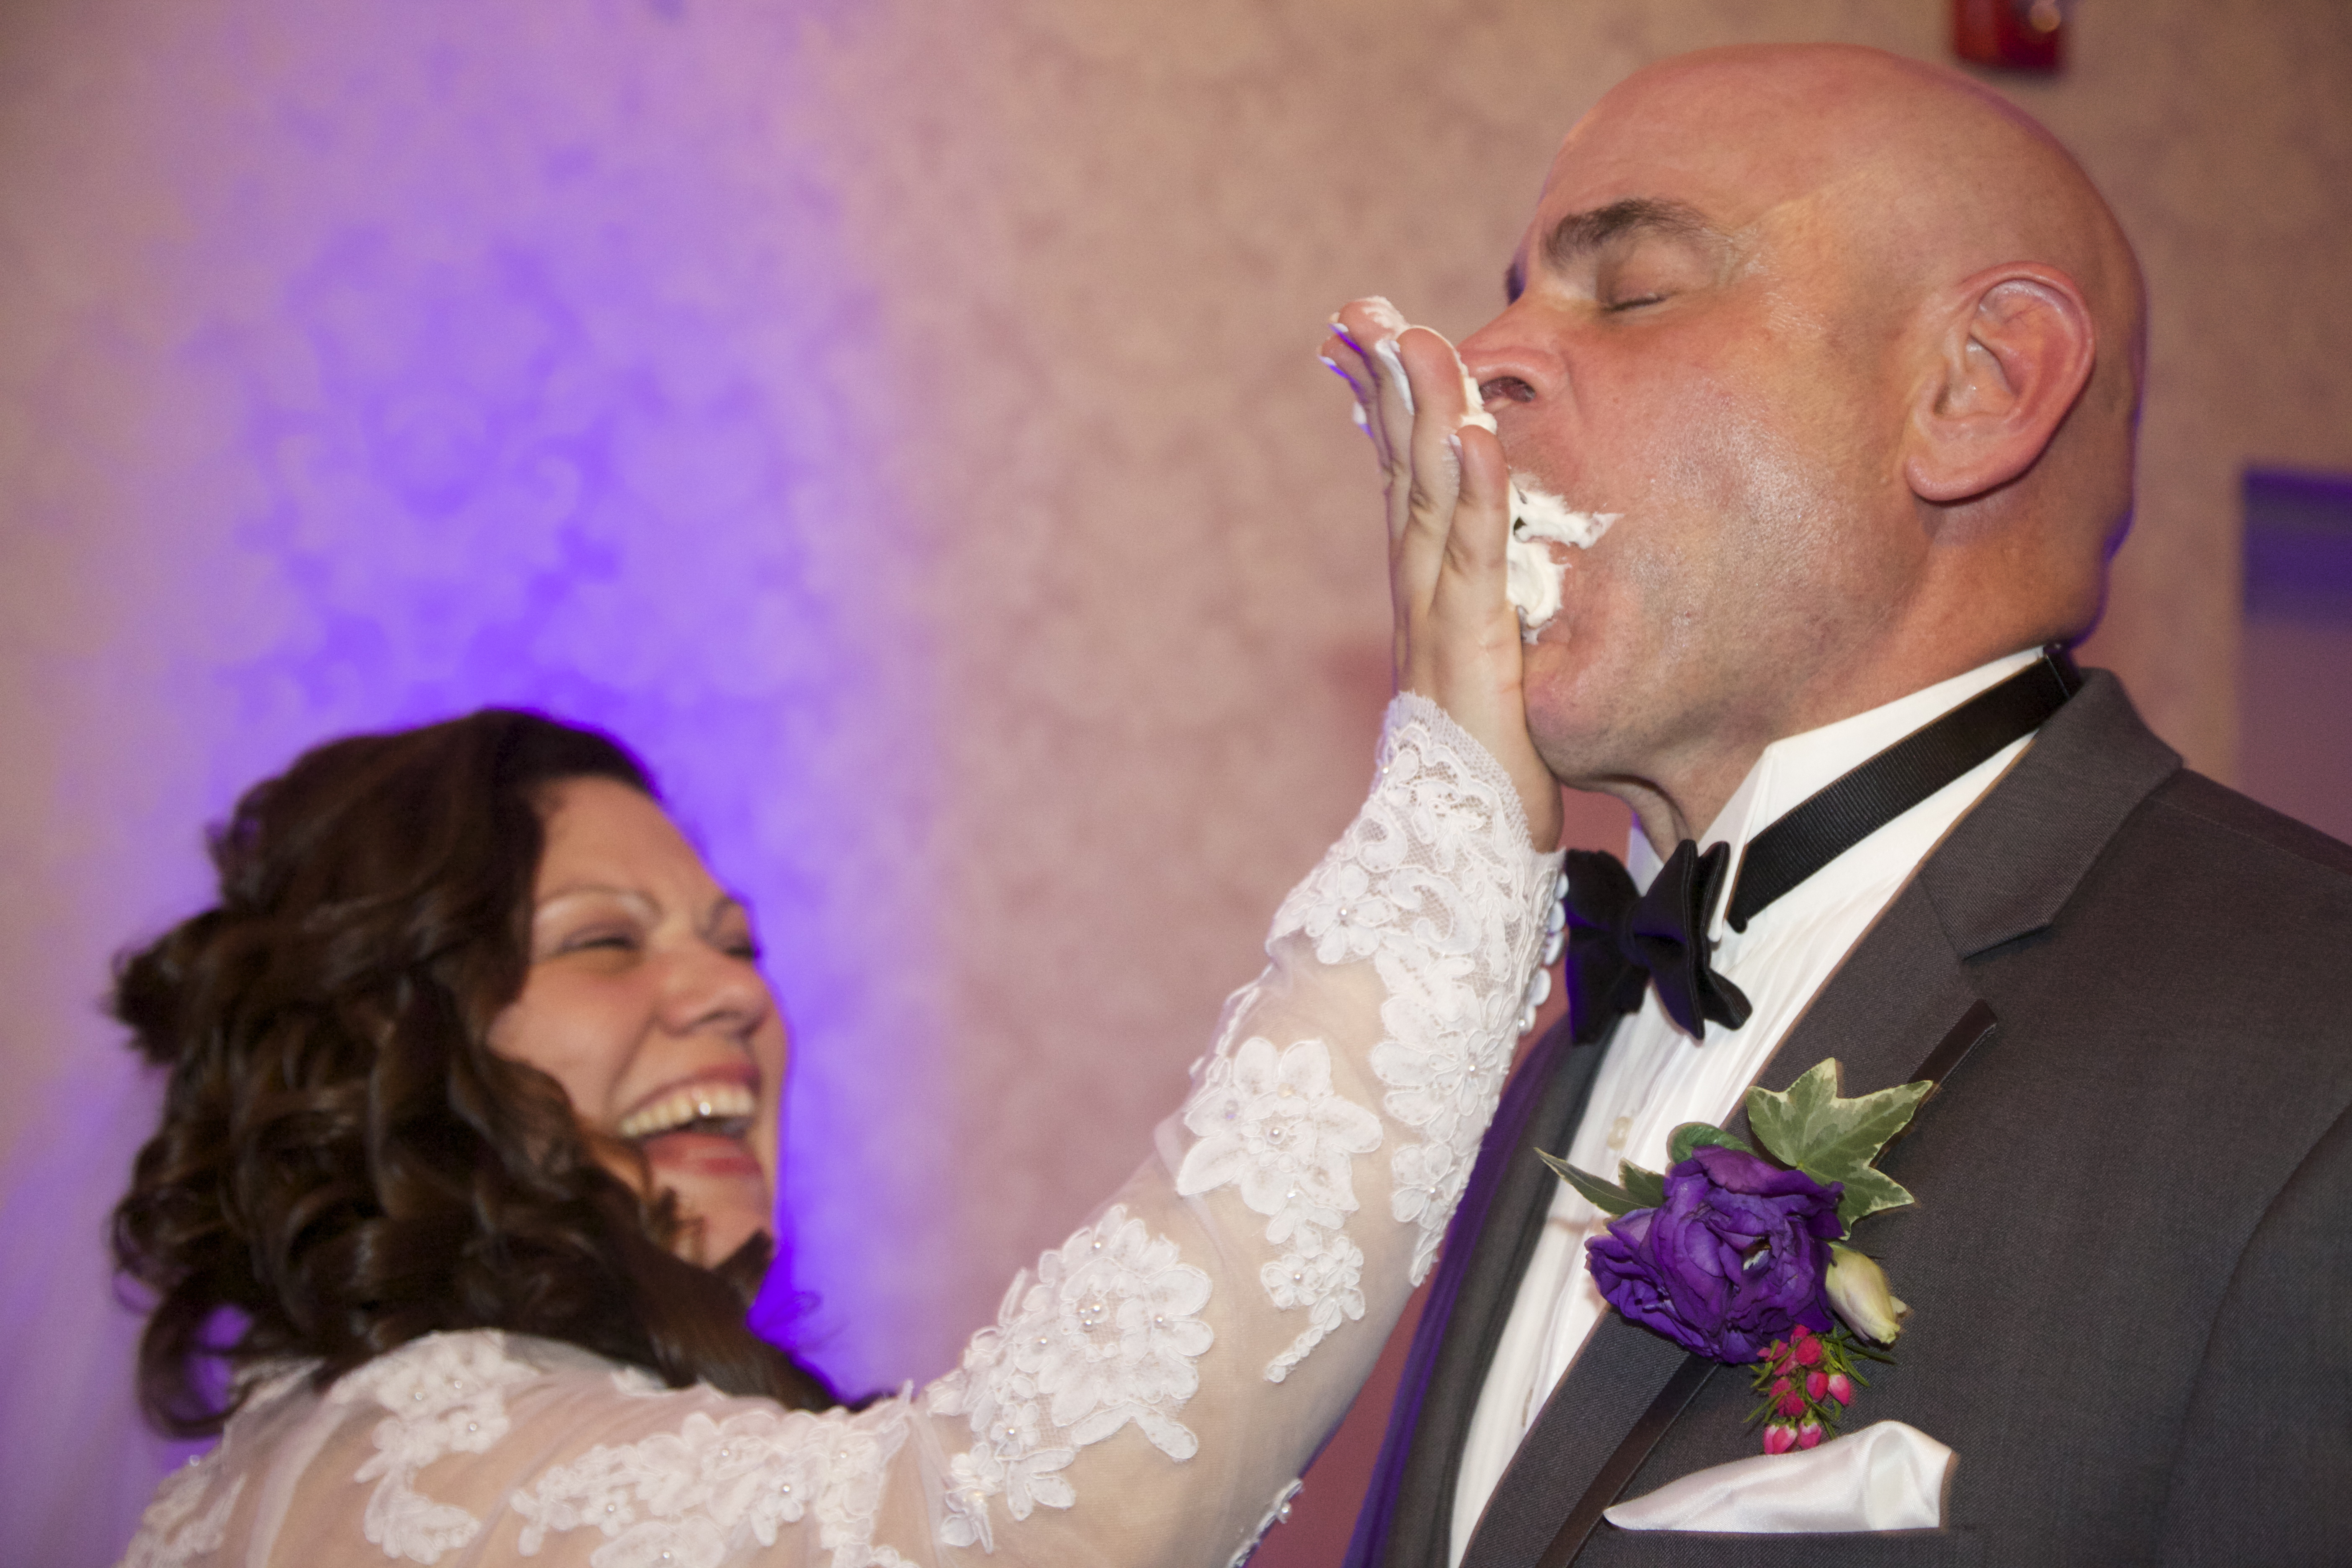 Some cake in the face